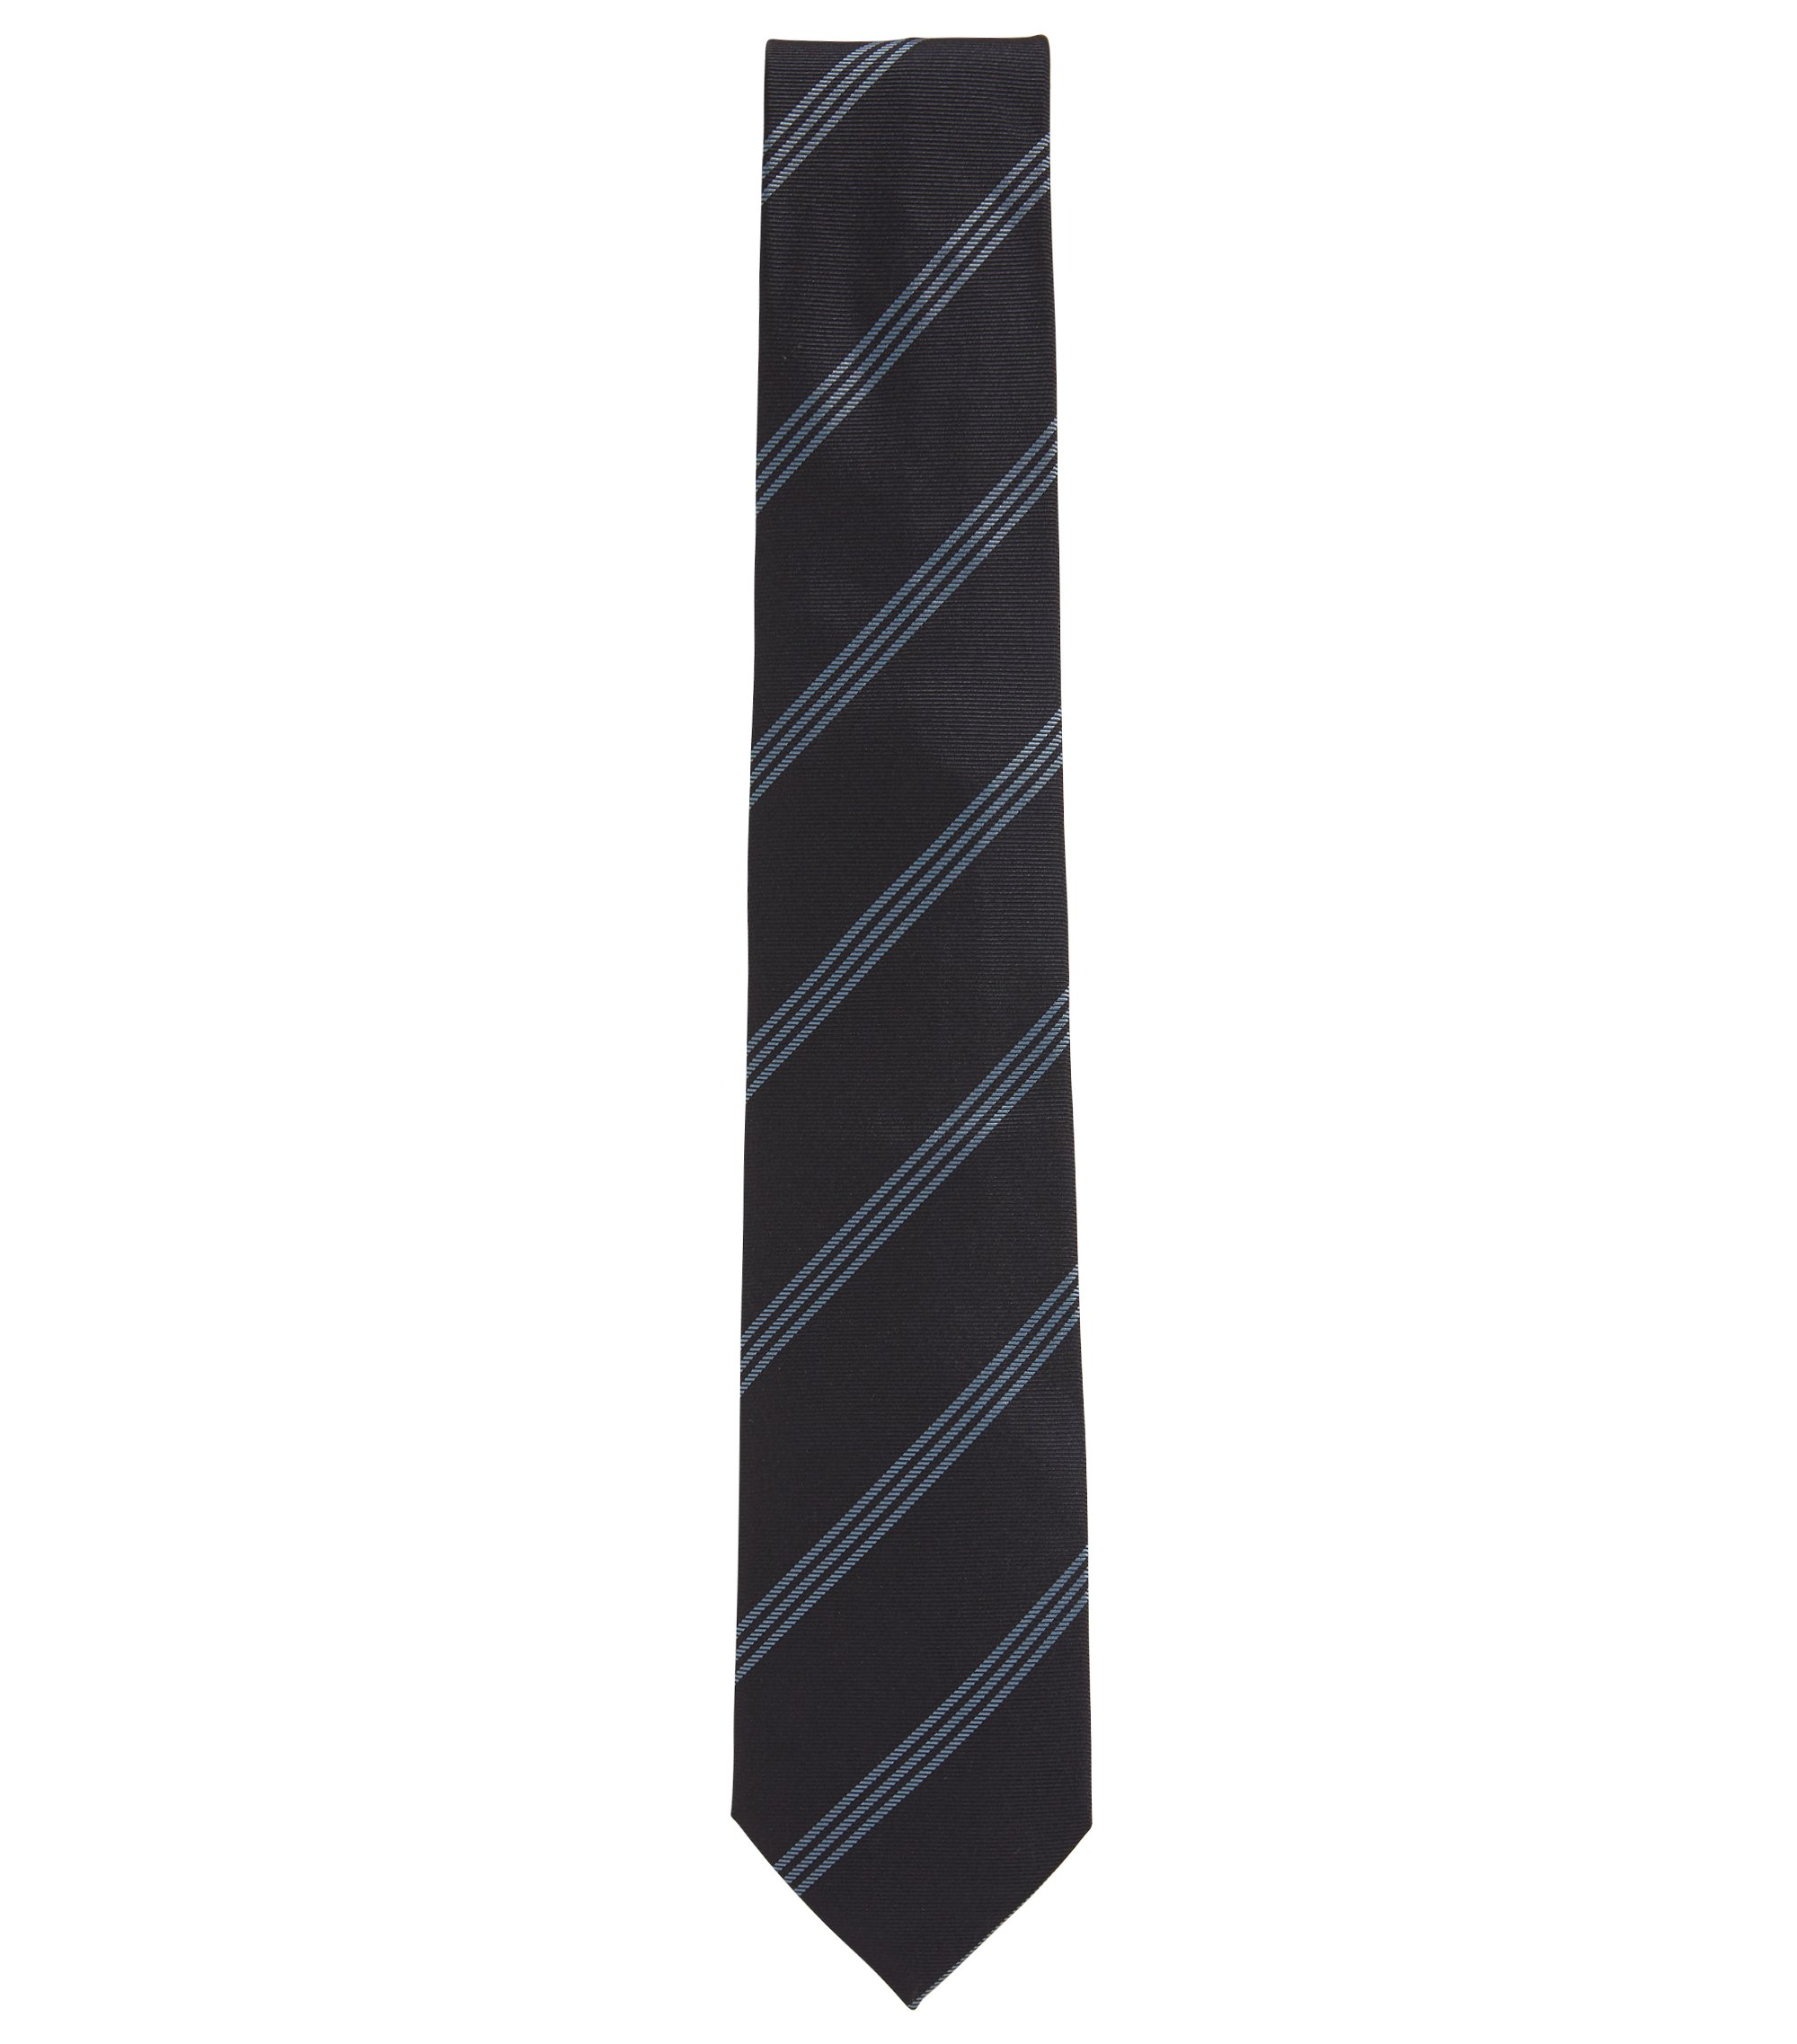 Italian-made silk tie with triple diagonal stripes, Patterned